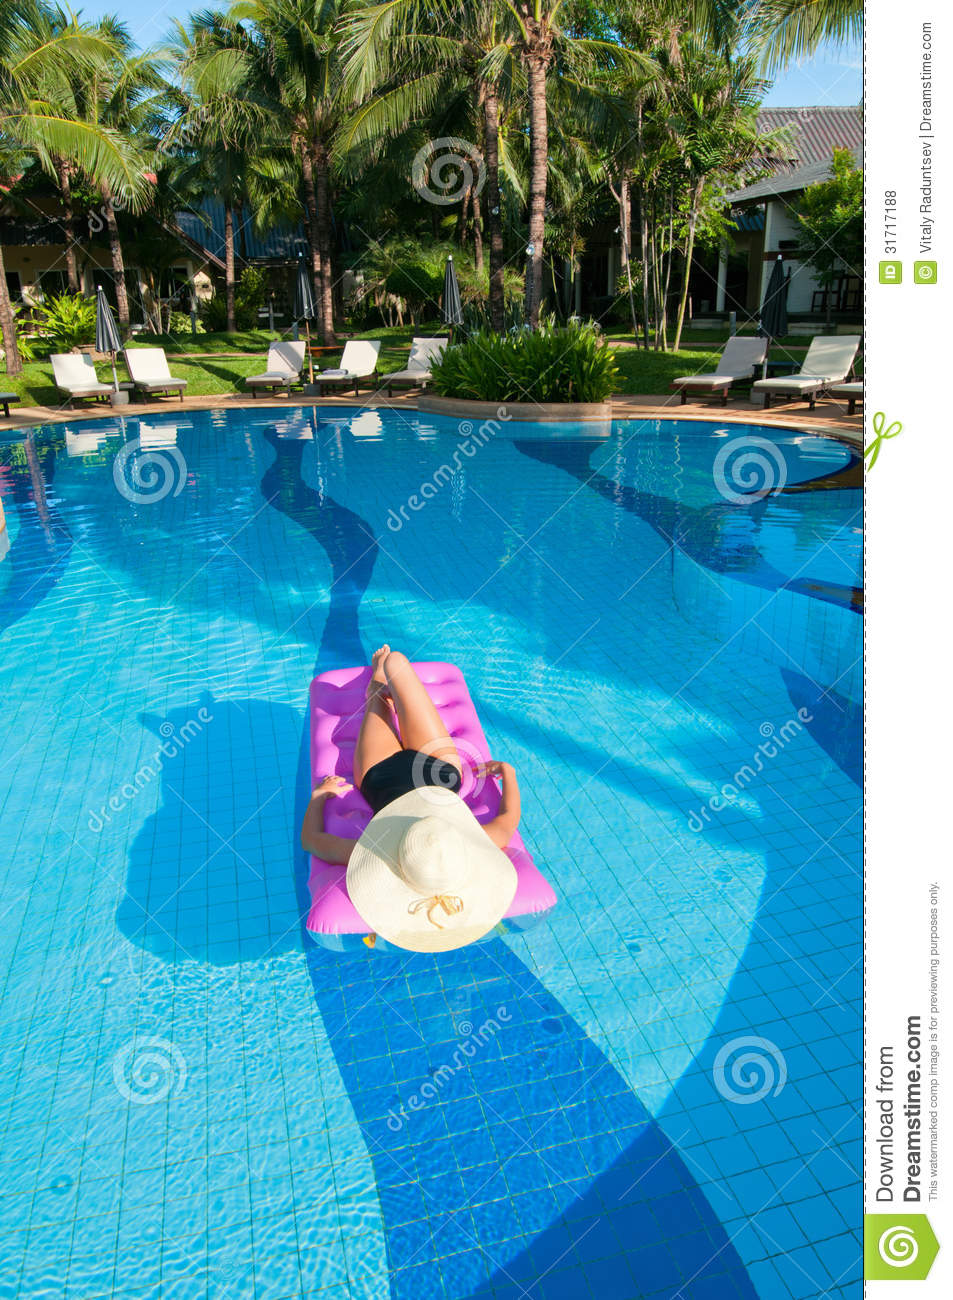 Free Swimming Pool: Relaxing In The Pool Royalty Free Stock Photos